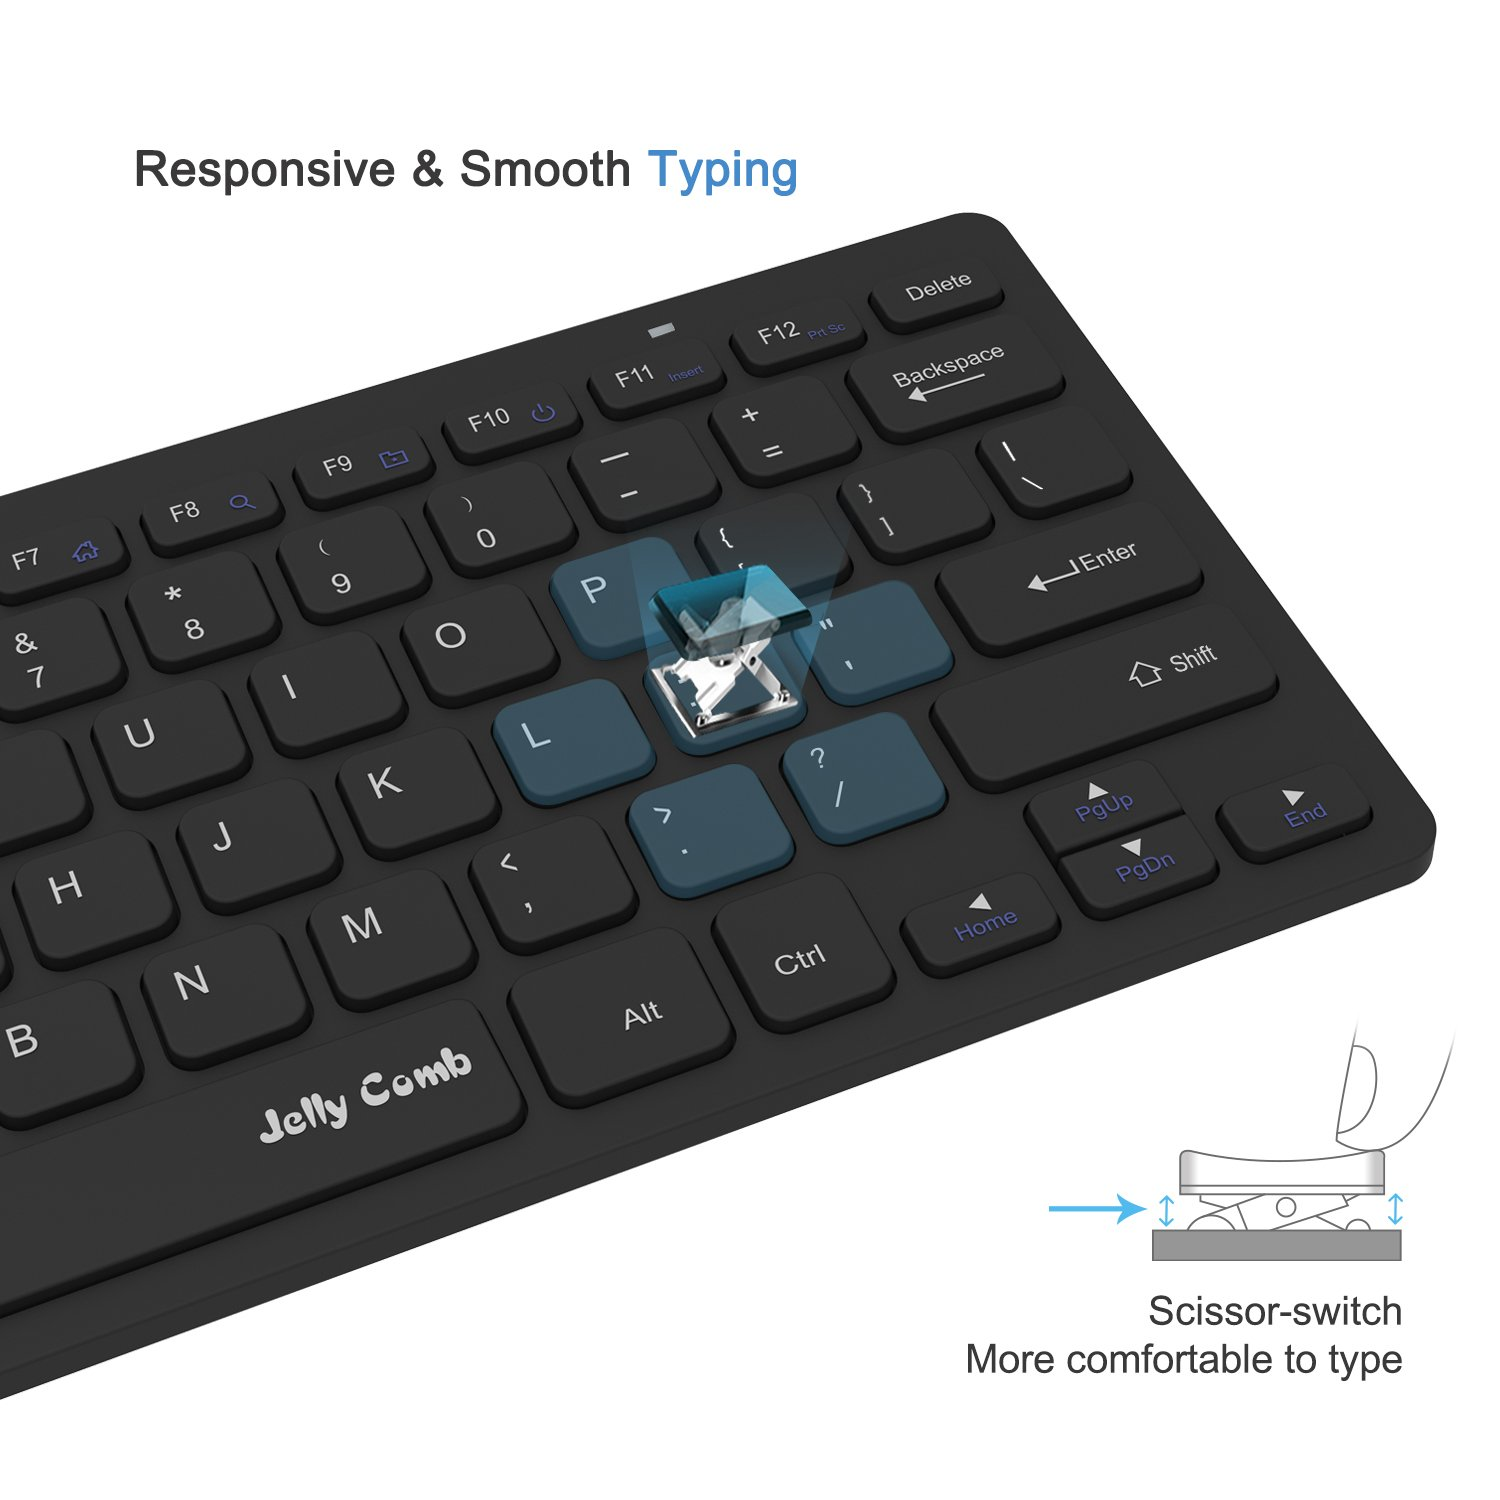 Wireless Keyboard Mouse, Jelly Comb 2.4GHz Ultra Thin Compact Portable SMALL Wireless Keyboard and Mouse Combo Set for PC, Desktop, Computer, Notebook, Laptop, Windows XP/Vista / 7/8 / 10 - Black by Jelly Comb (Image #5)